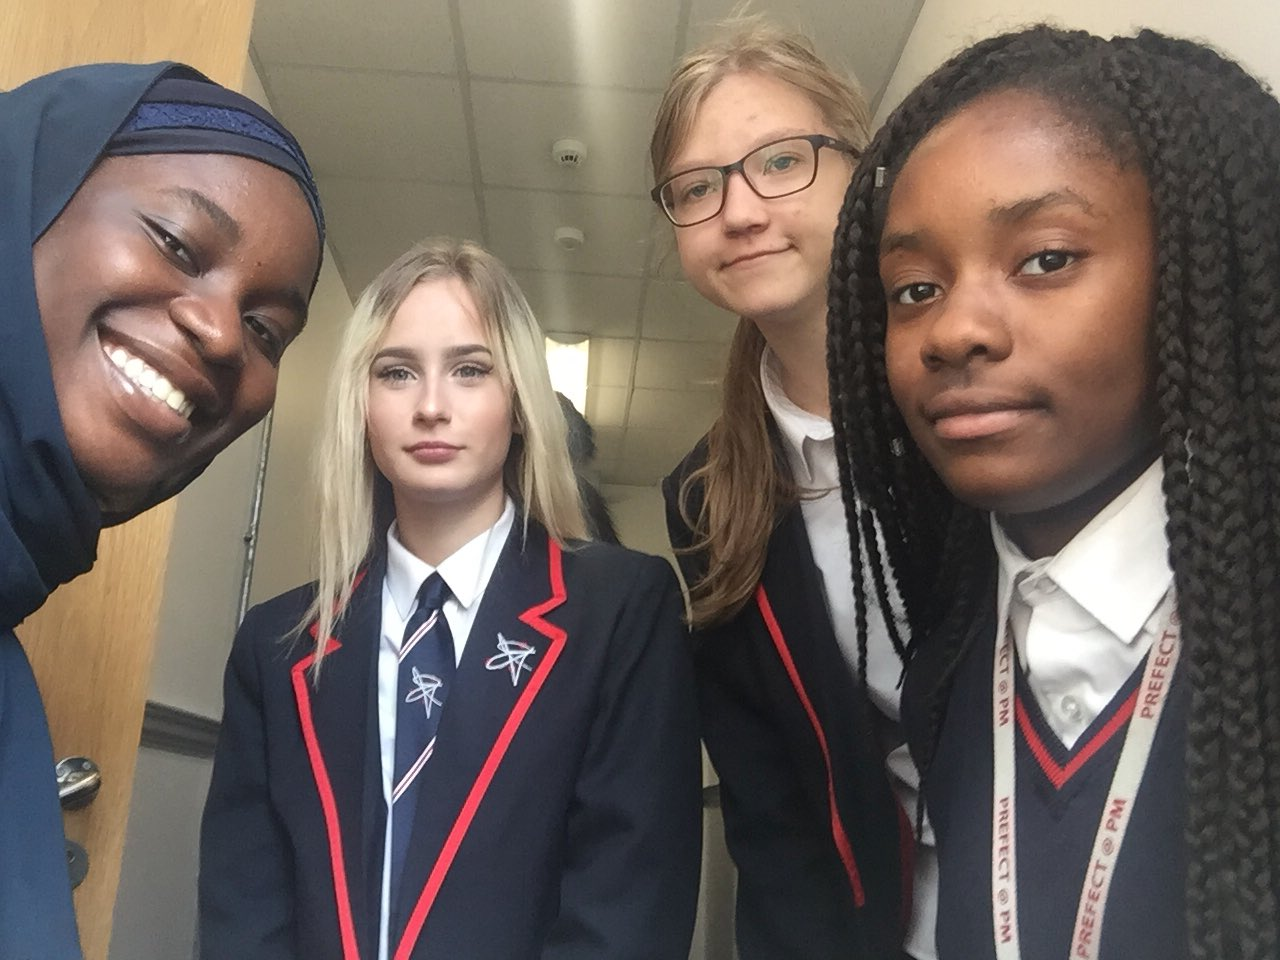 We are four students with a passion in youth voice and poverty. We've decided to bring our strengths together to do all we can with the help and support of our teachers to help end period poverty in our schools. https://t.co/jeipX4LM24